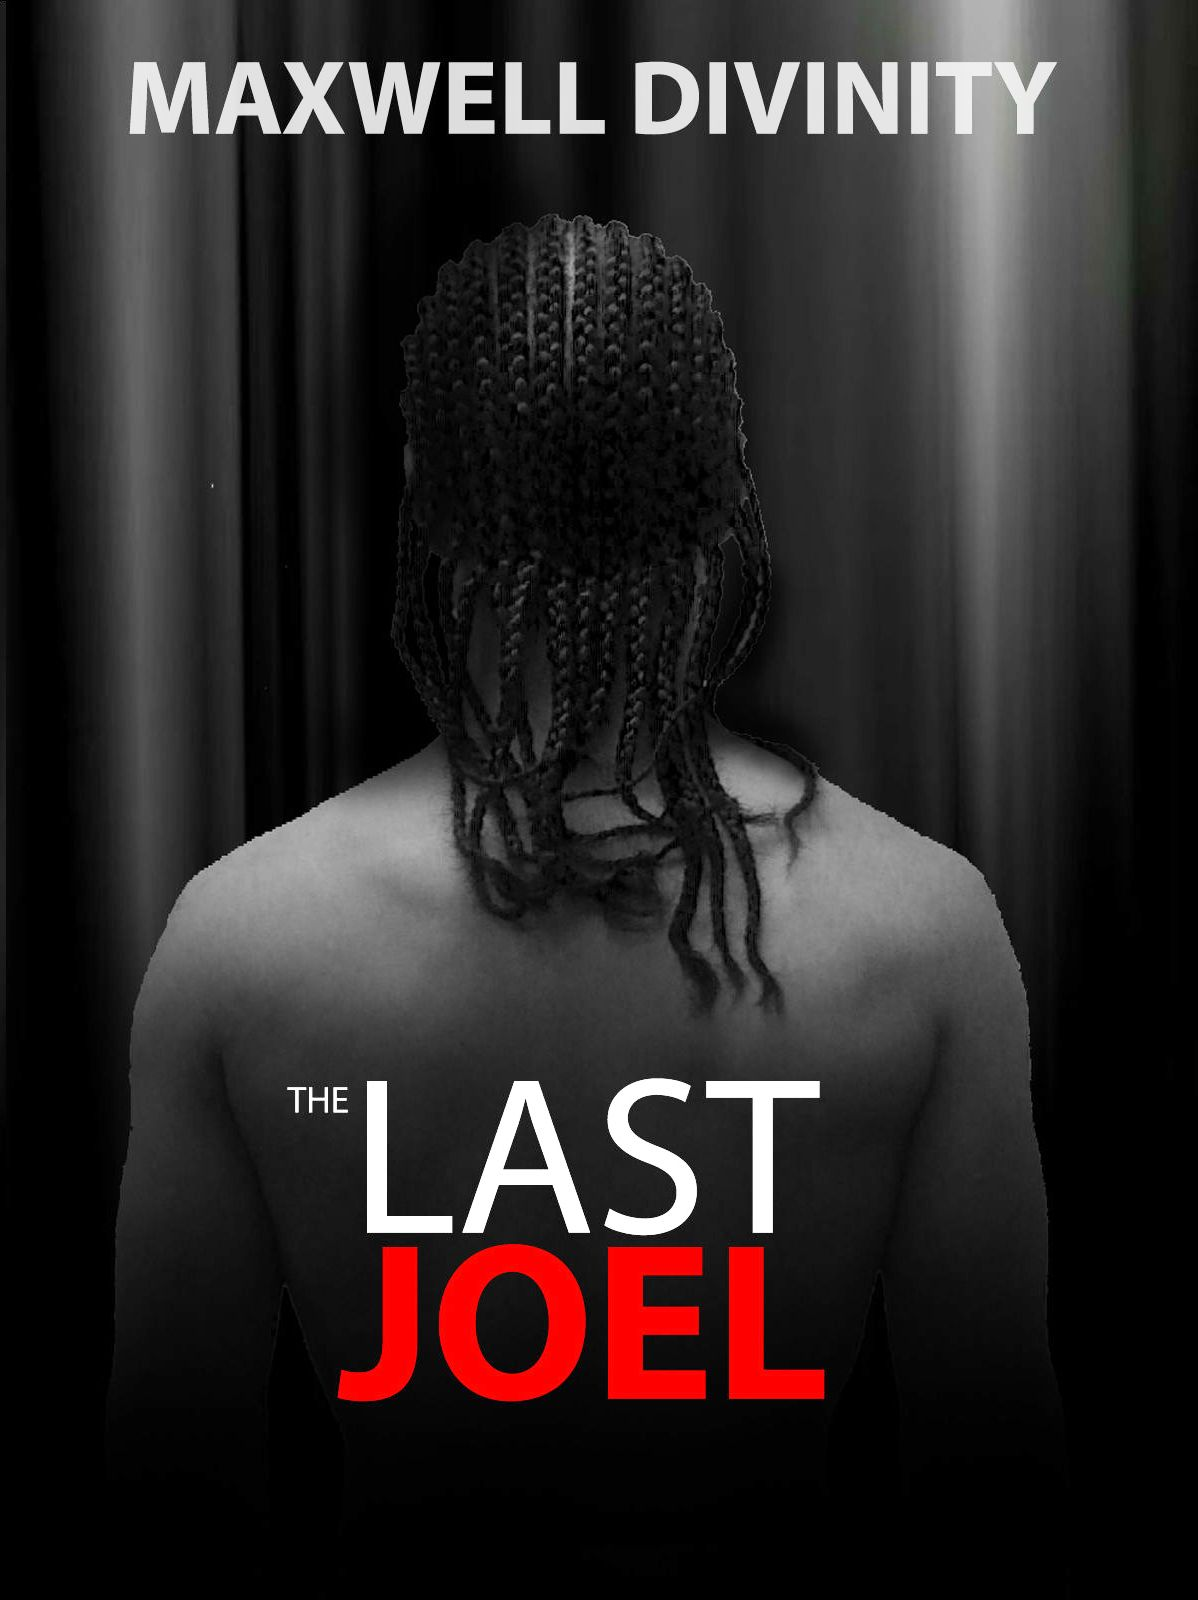 The Last Joel Book Cover By Maxwell Divinity